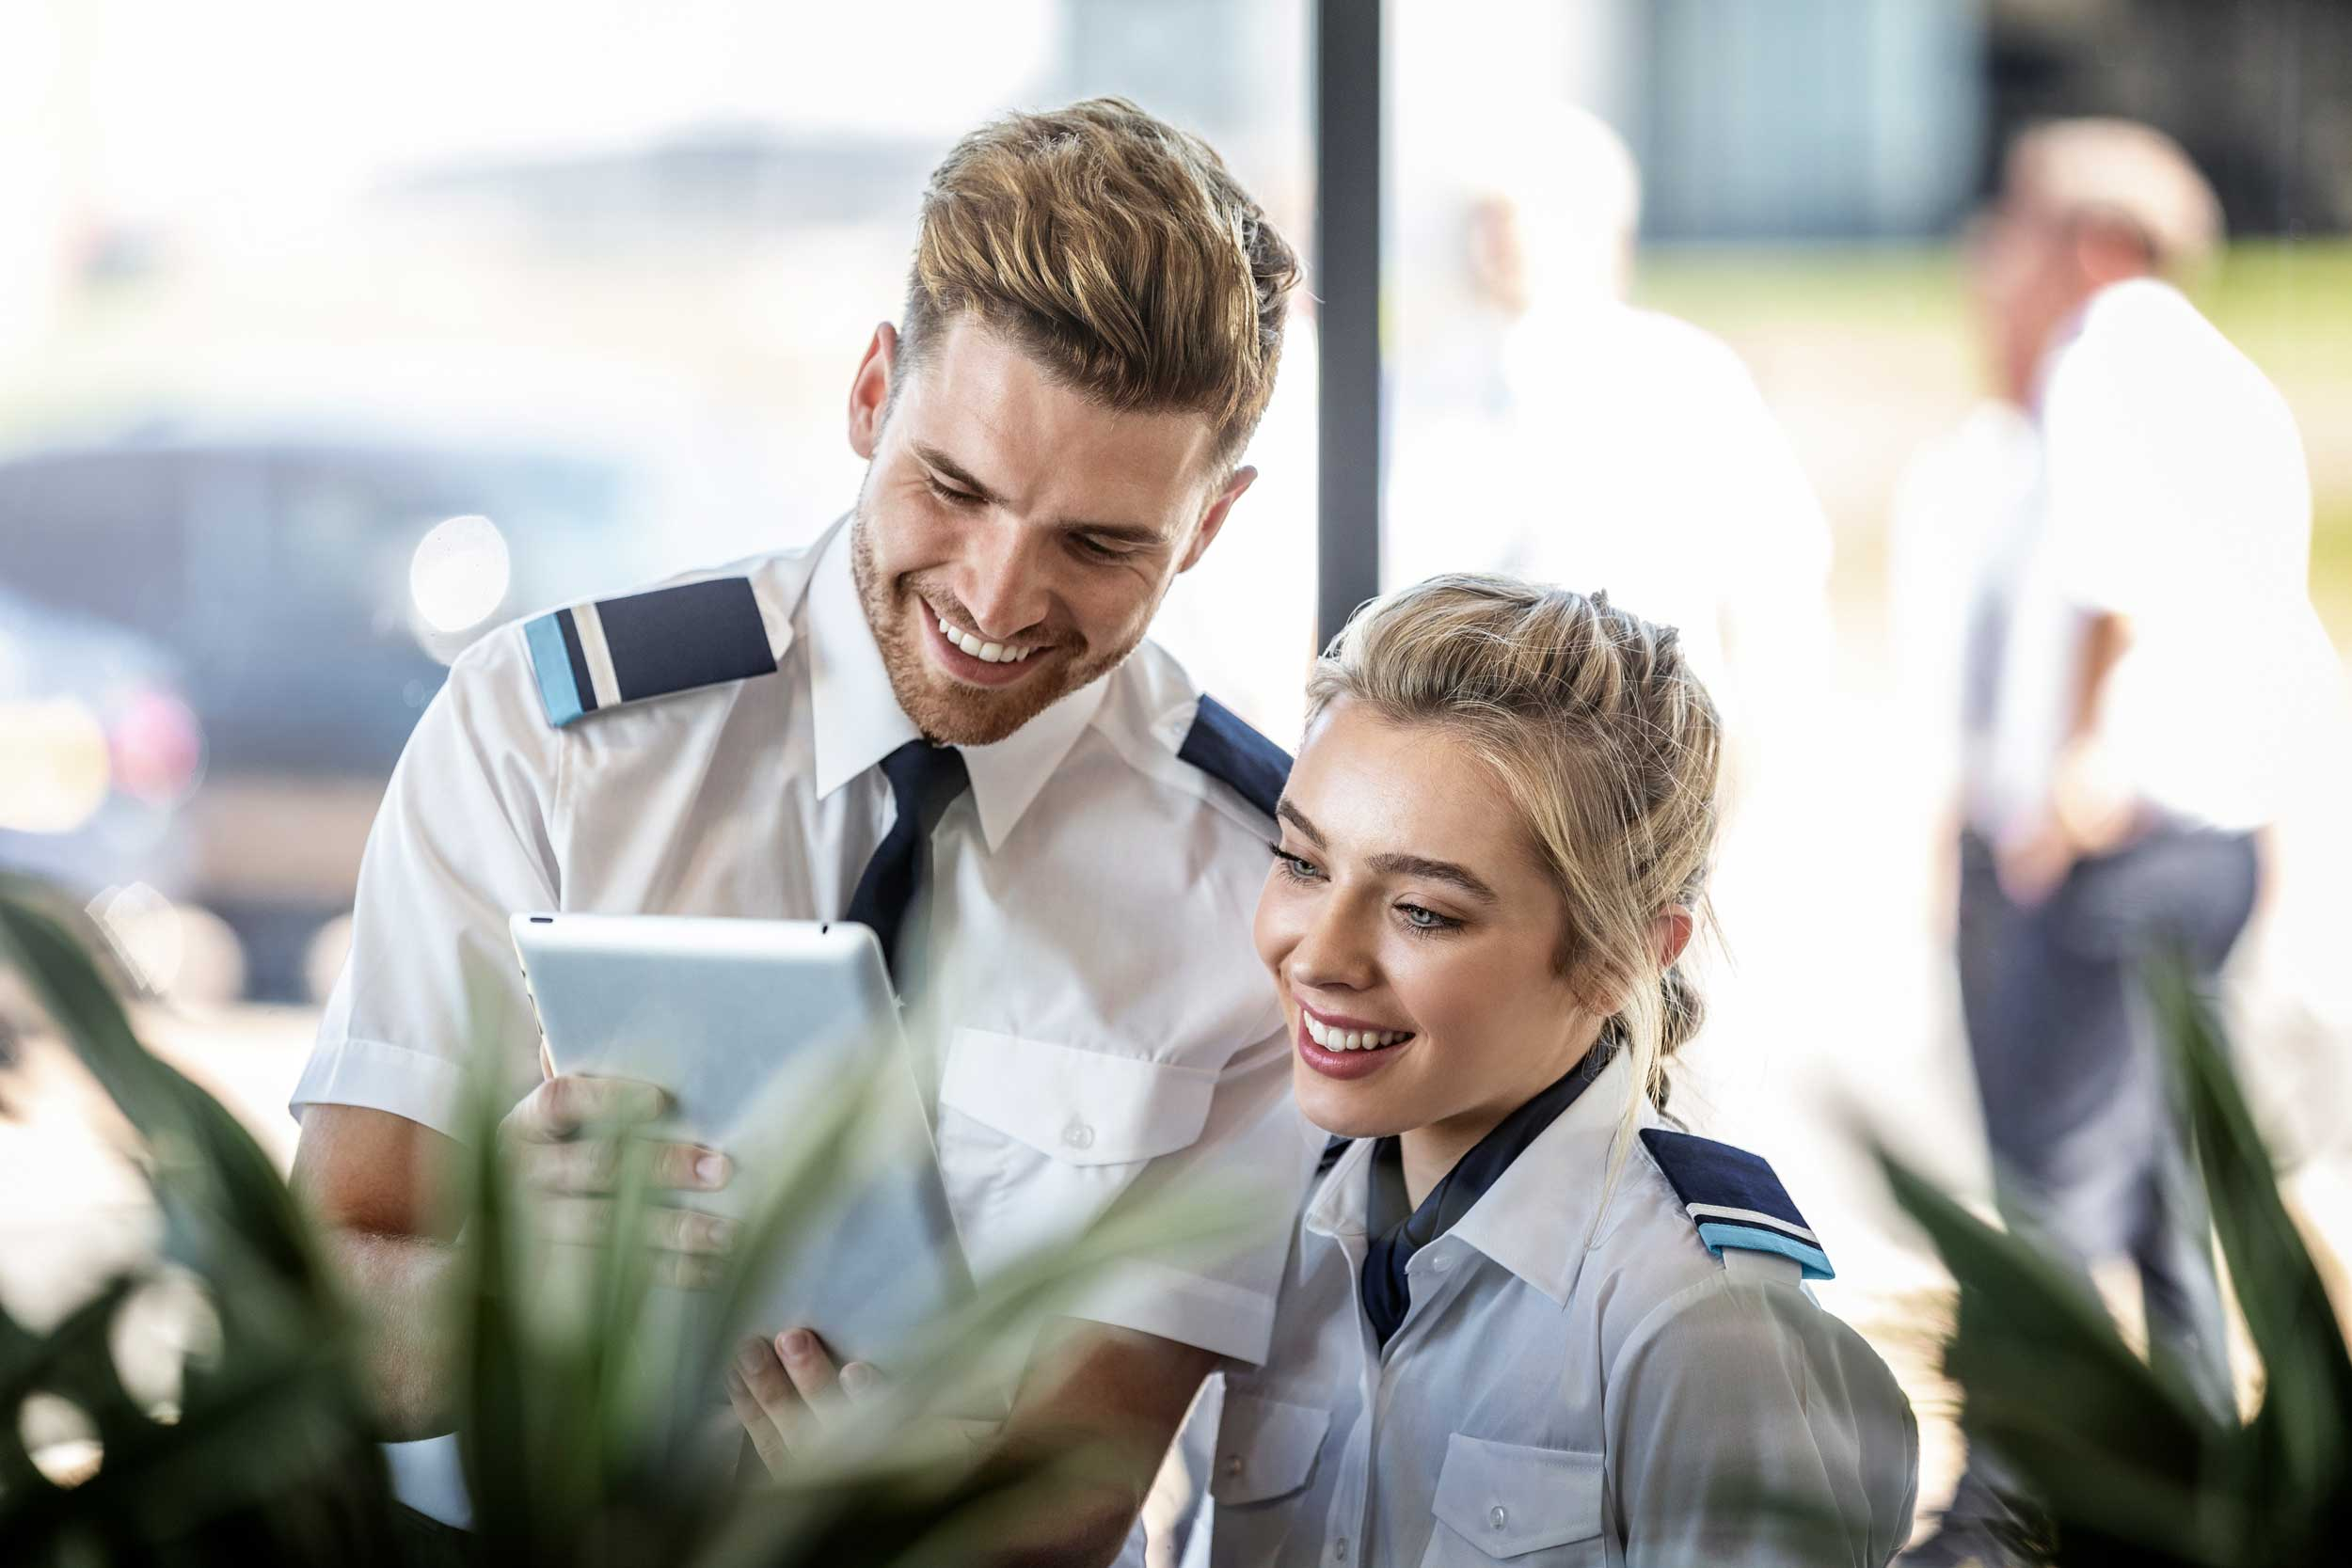 Cadet pilots at Skyborne Airline Academy can now opt to take an honours degree during their pilot training, thanks to a new partnership with the University of West London (UWL).